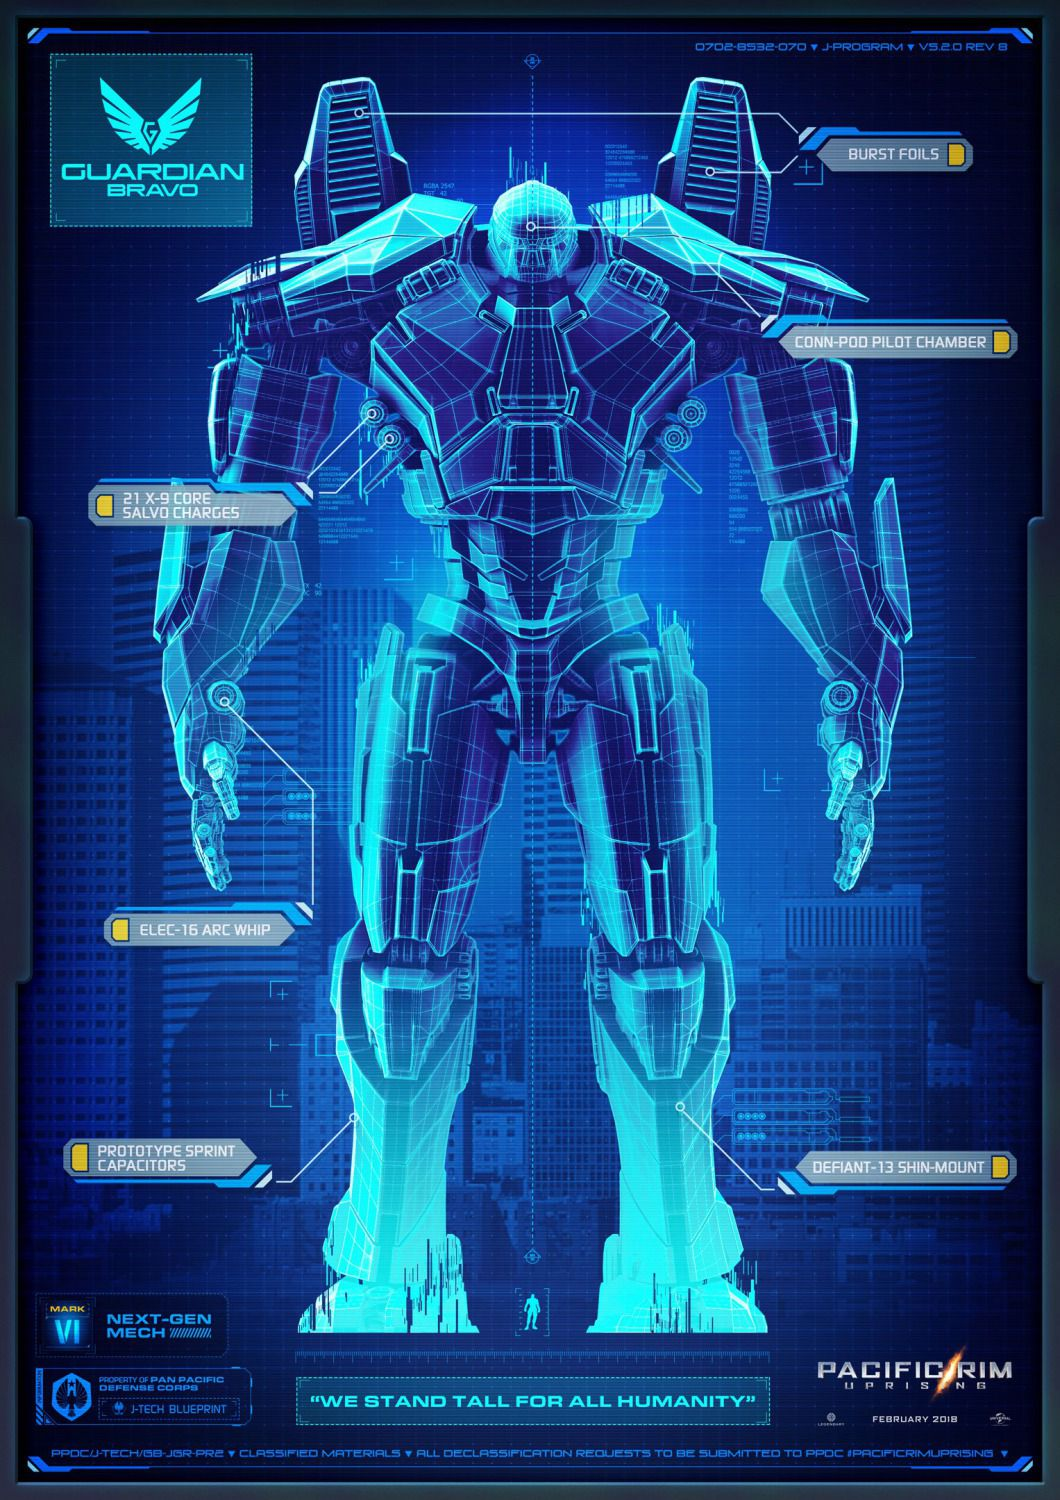 Pacific Rim Uprising - Guardian Bravo - Next Generation Mech Mark IV - Pan Pacific Defense Corps